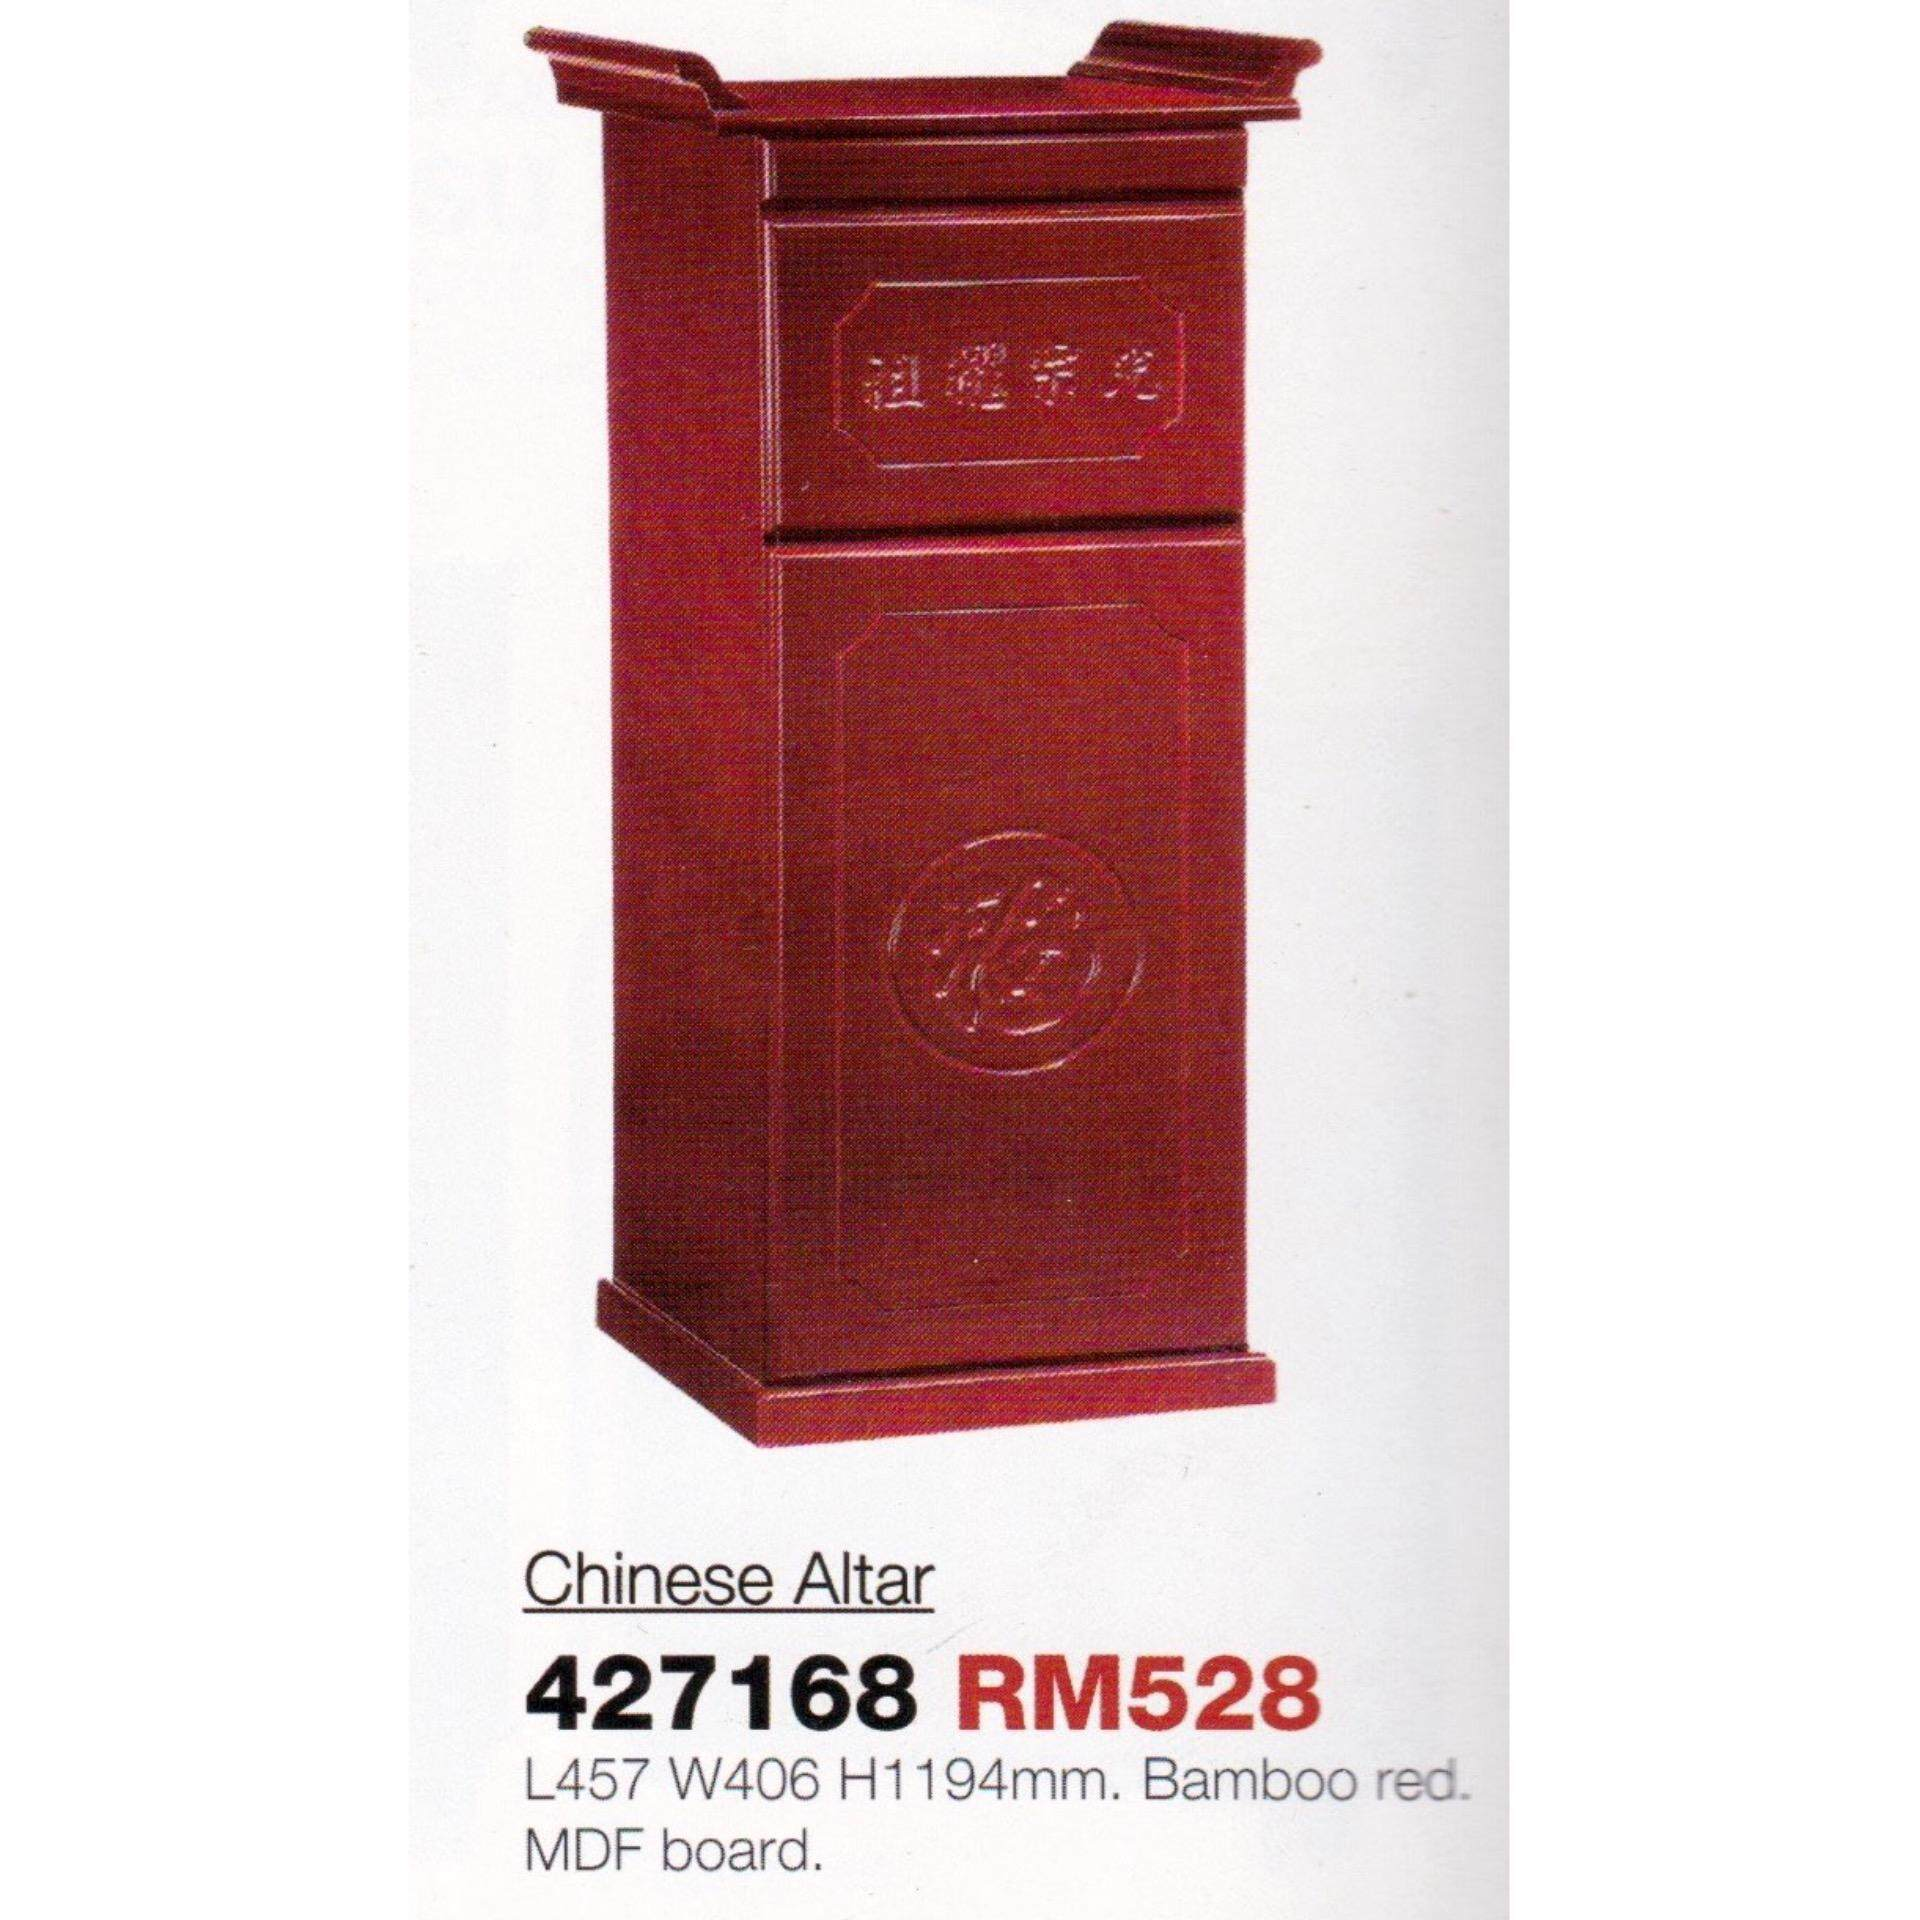 Ready-Fixed 1&Half Feet Feng Shui Chinese Altar Prayers Cabinet (Bamboo Red)